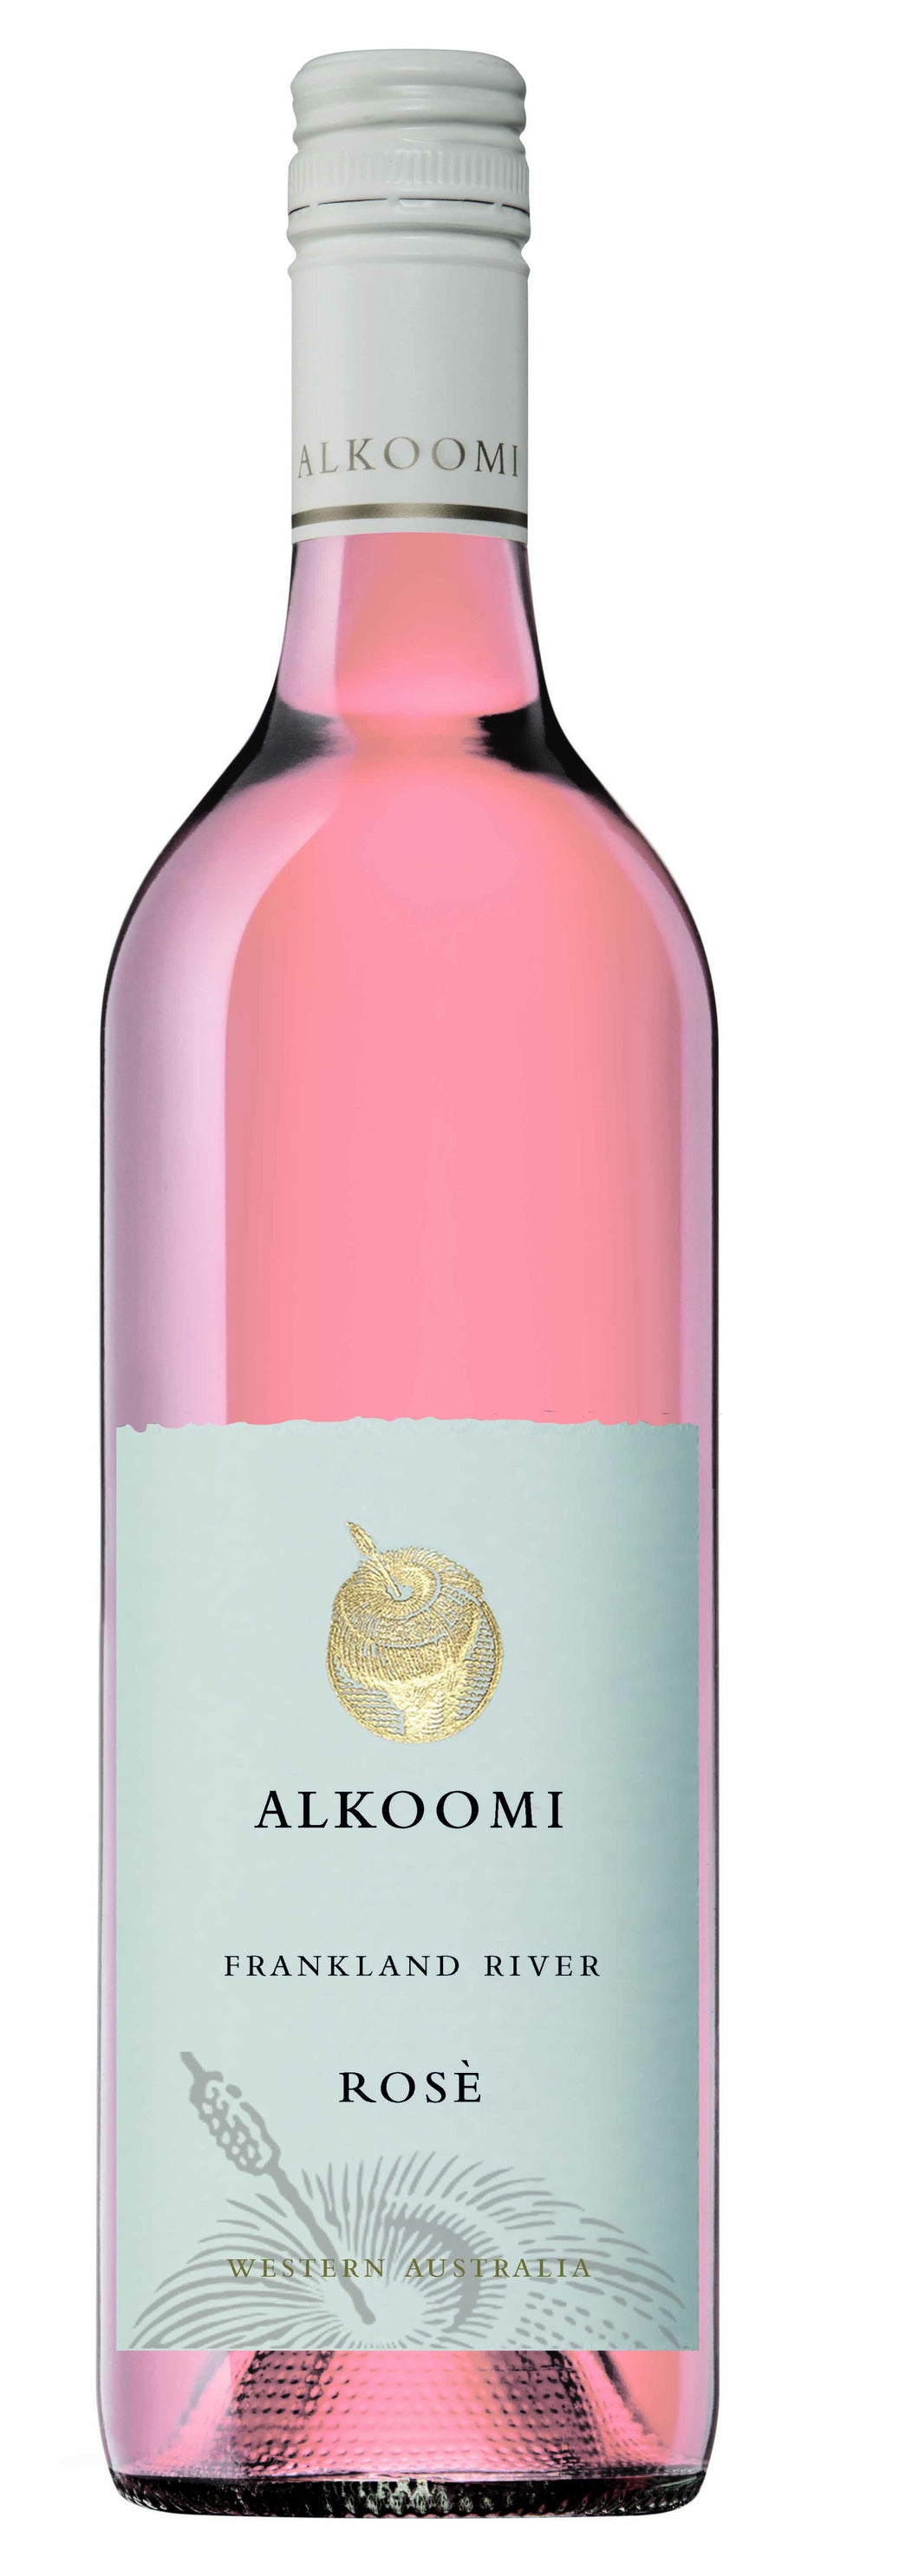 Alkoomi White Label Rose 2017 - Network Wines